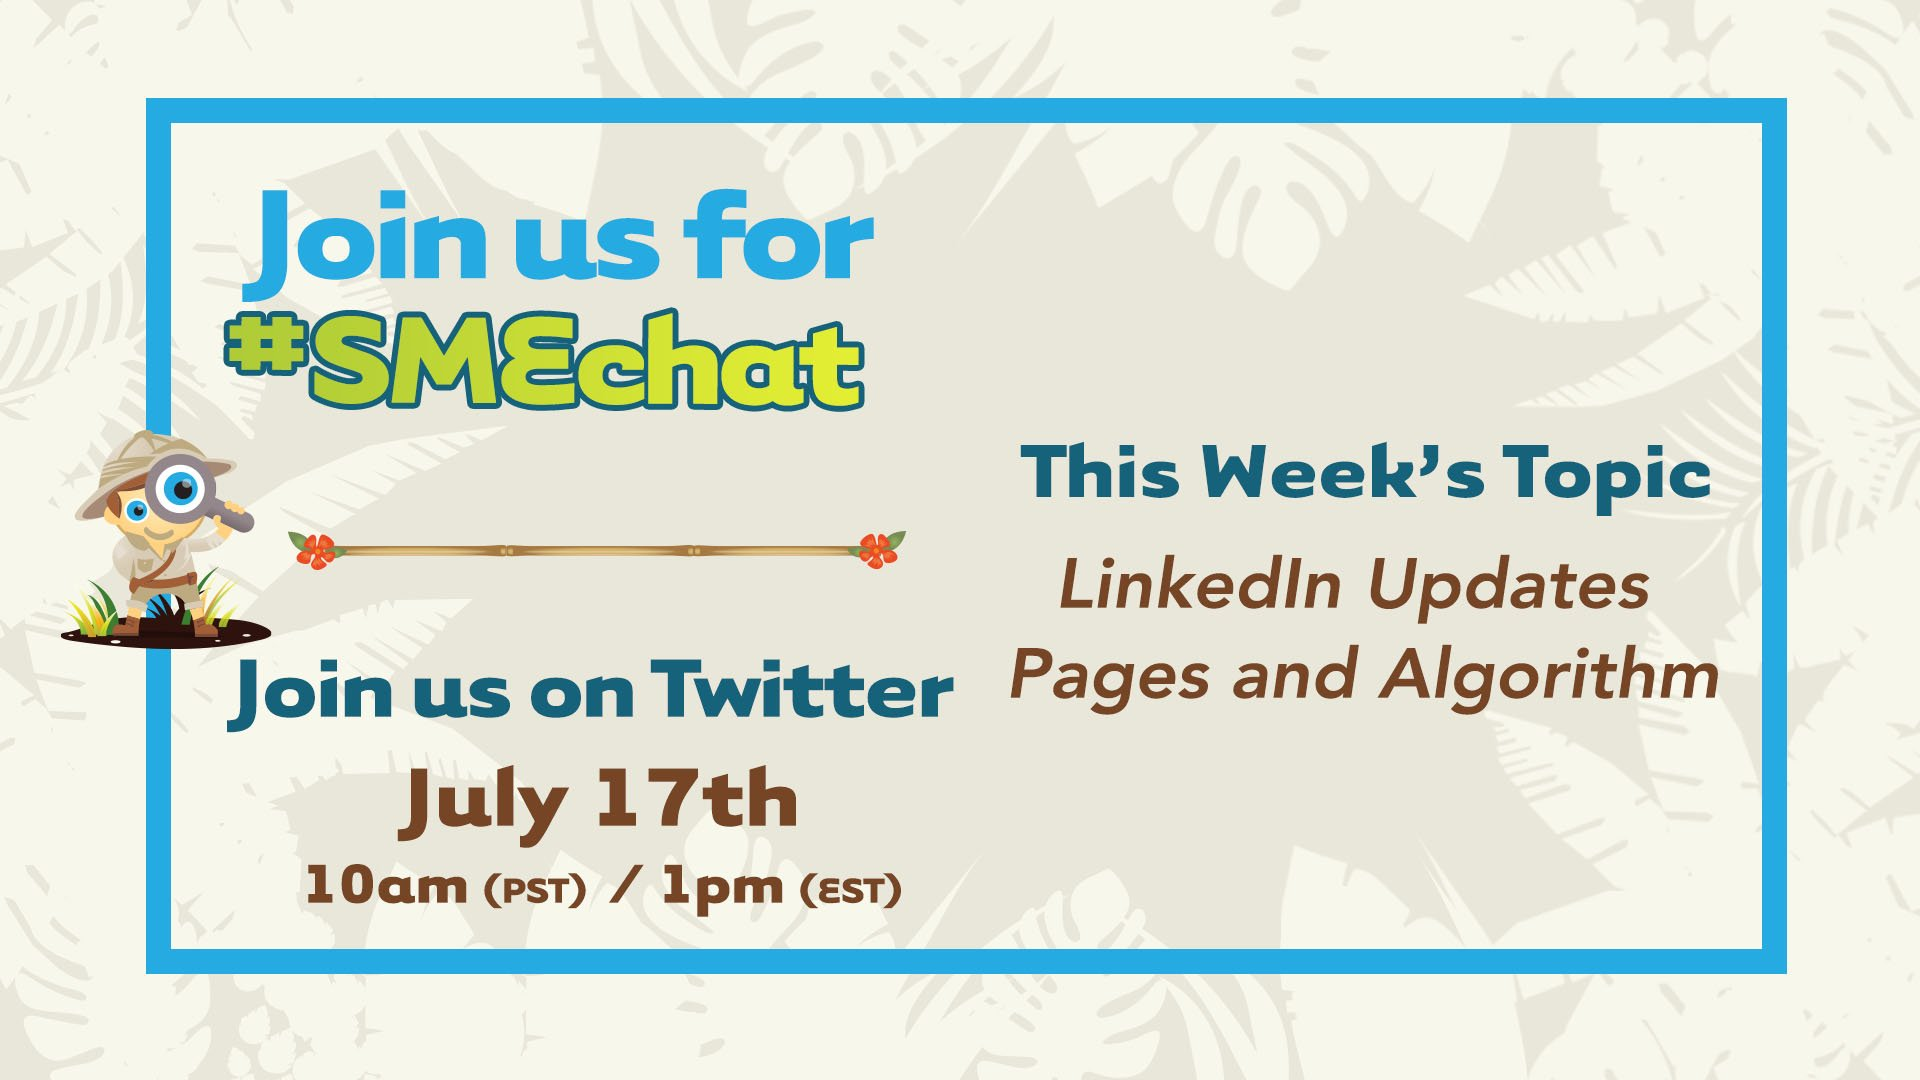 We're looking forward to an awesome chat about updates to @LinkedIn Pages and the algorithm! To get us started, please introduce yourself and let us know where you are tweeting from. -Jen #smechat https://t.co/nC0lUZao7i